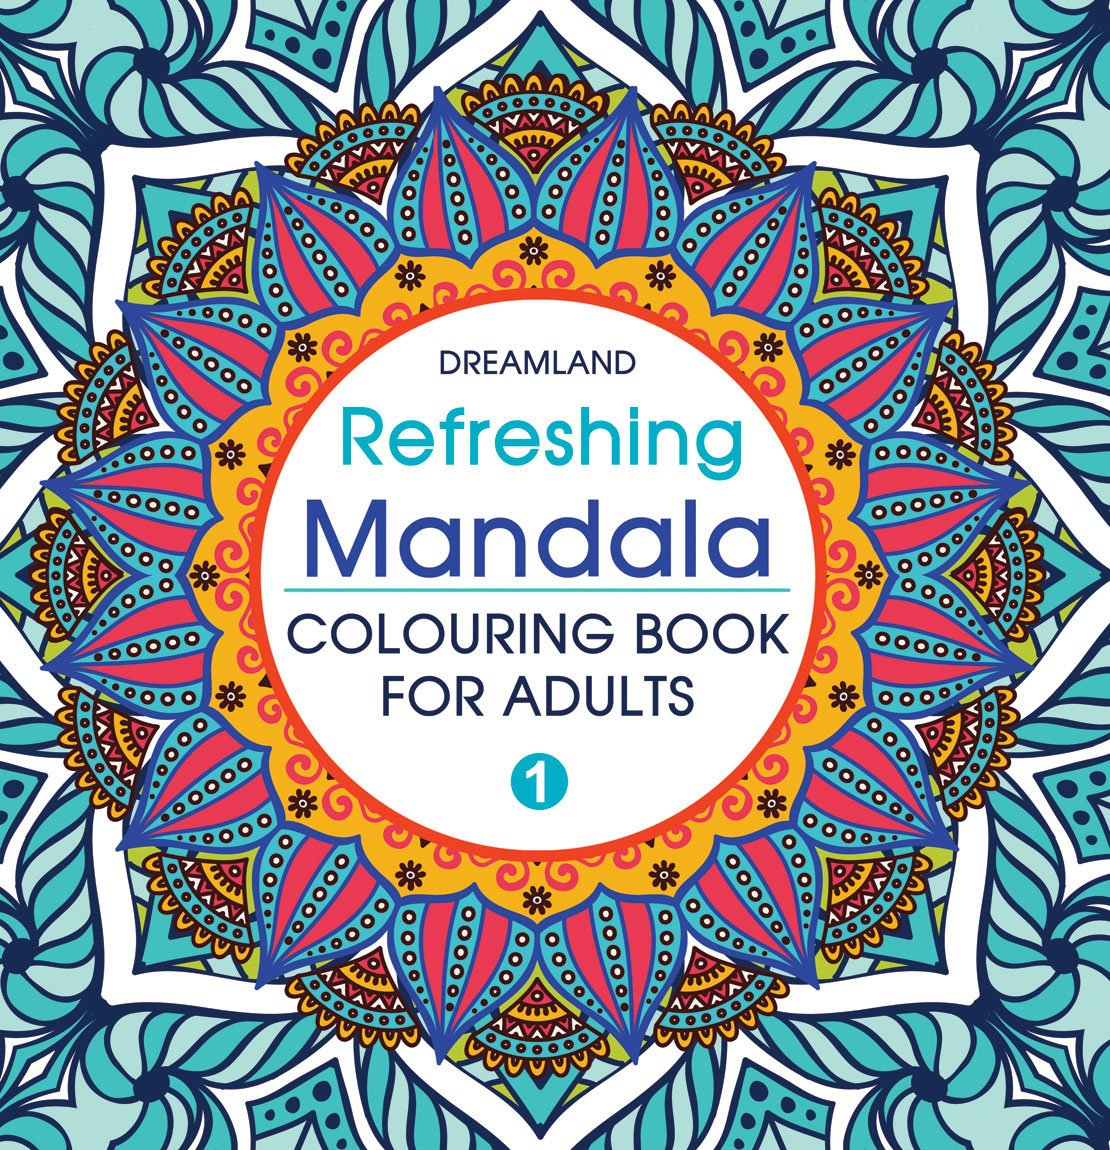 Refreshing Mandala - Coloring Book for Adults Online